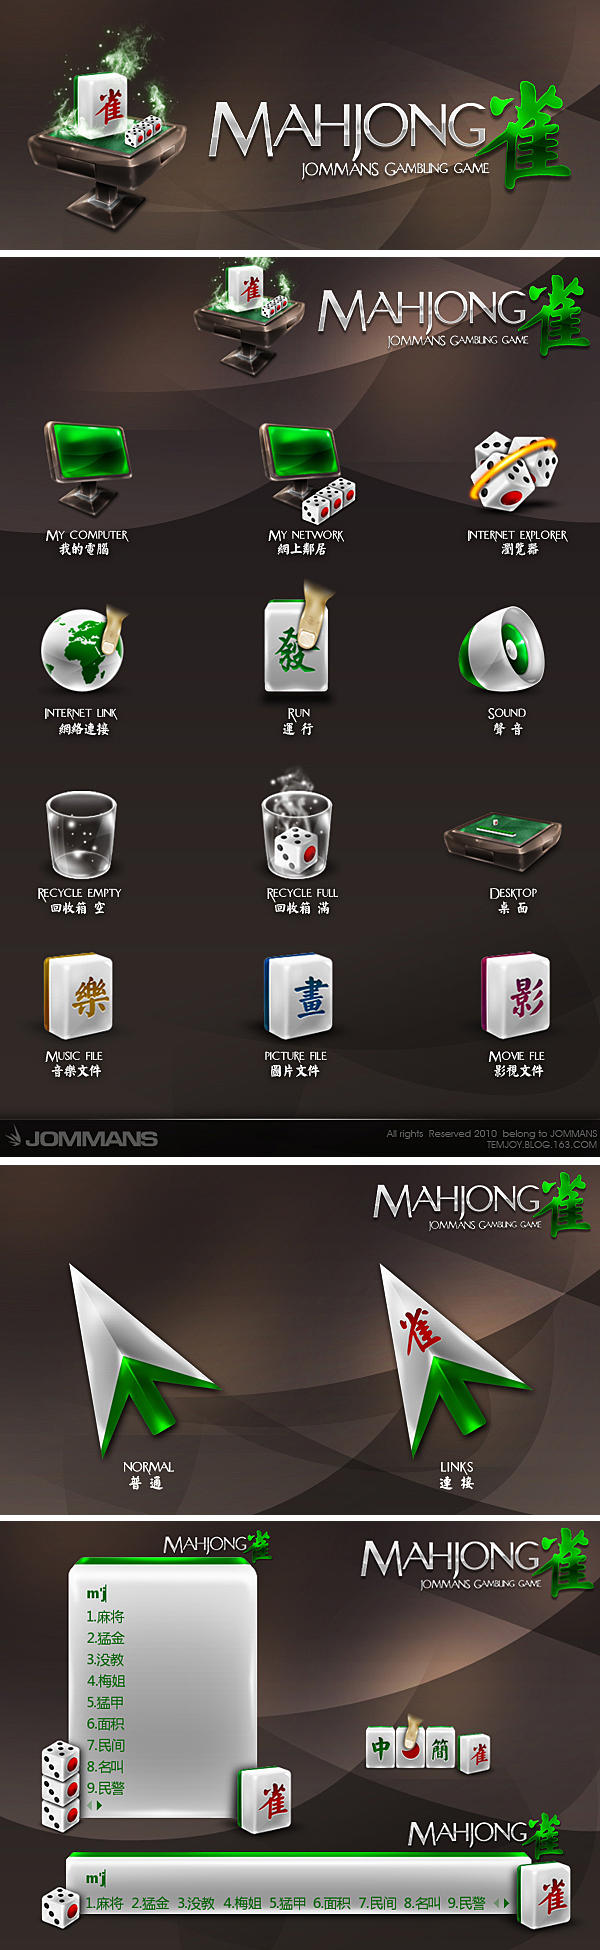 Mahjong icons by JOMMANS